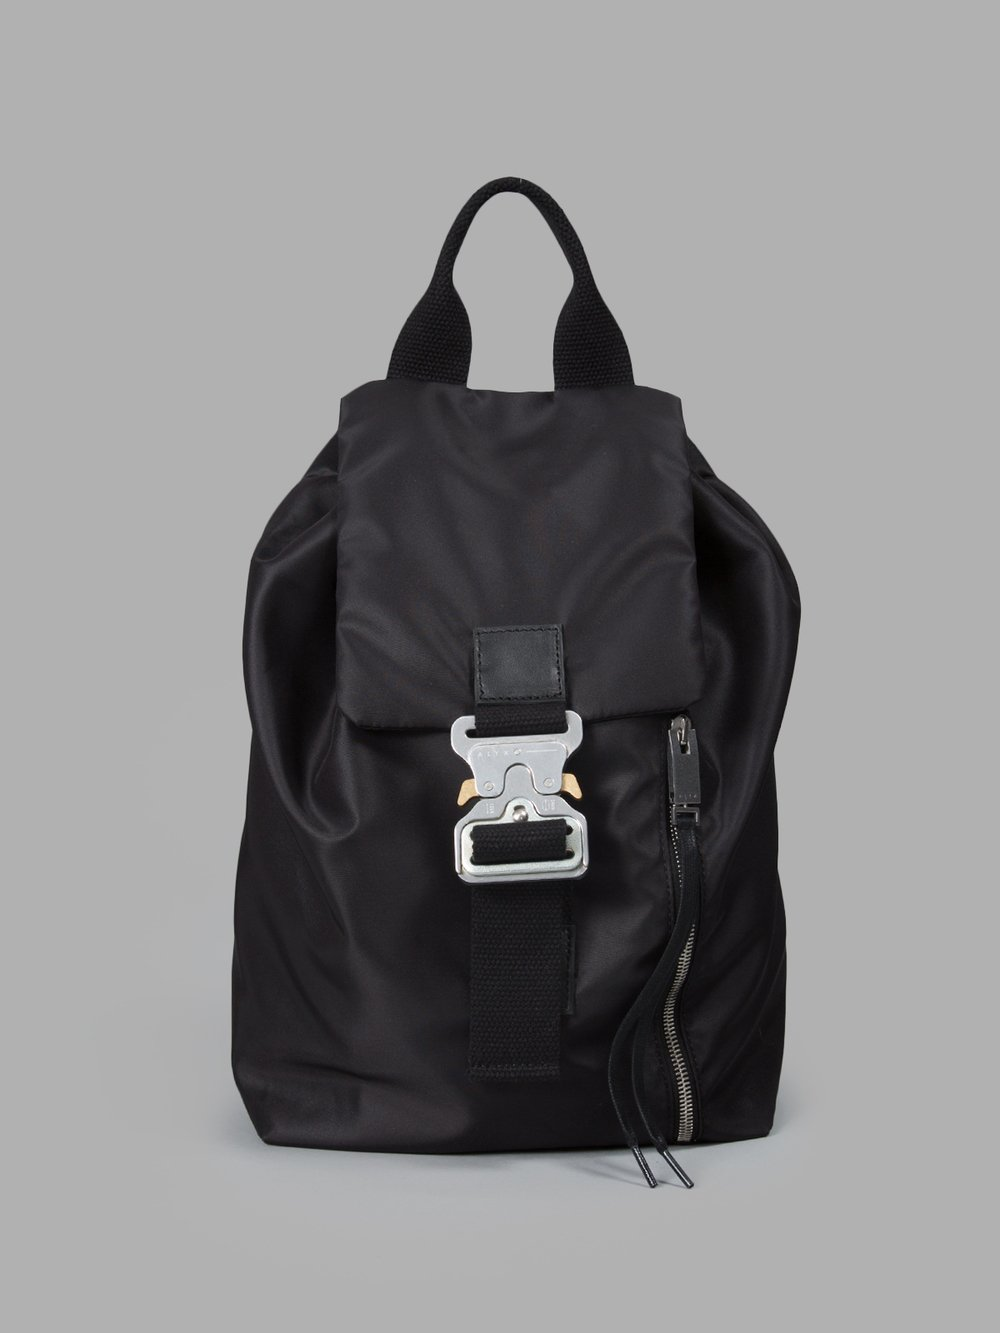 ALYX BACKPACKS